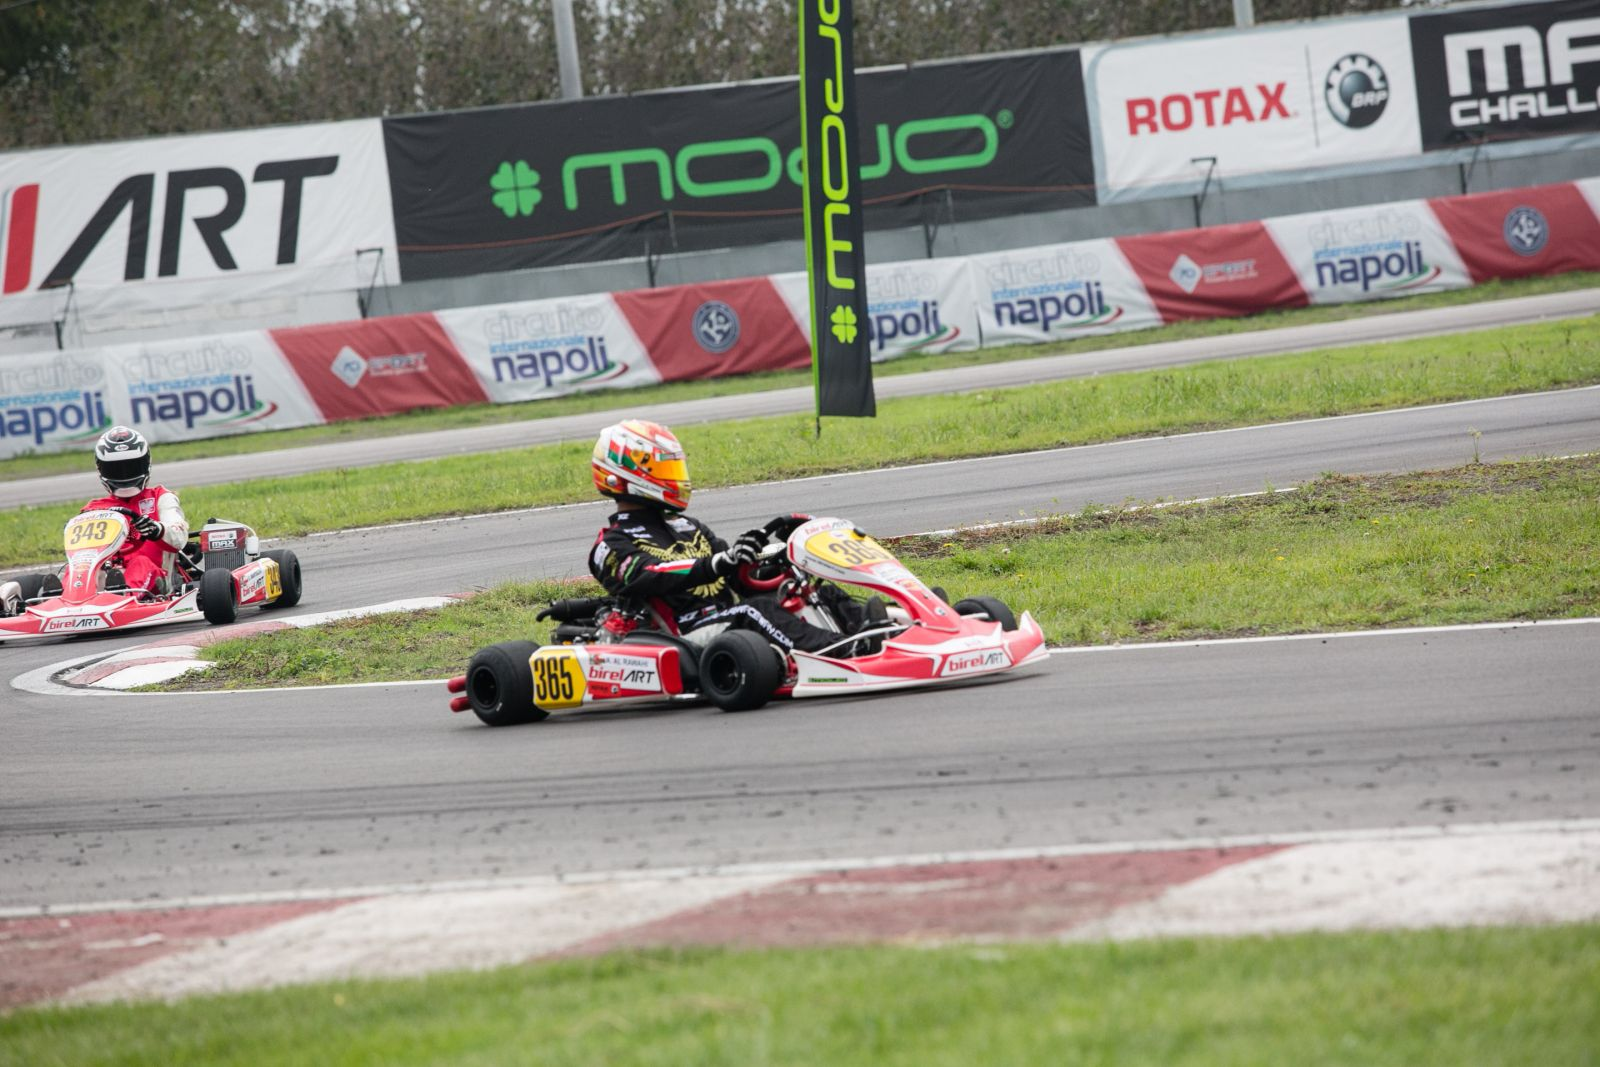 Circuito Karting : Day 2 team uae track action begins at the rotax max challenge